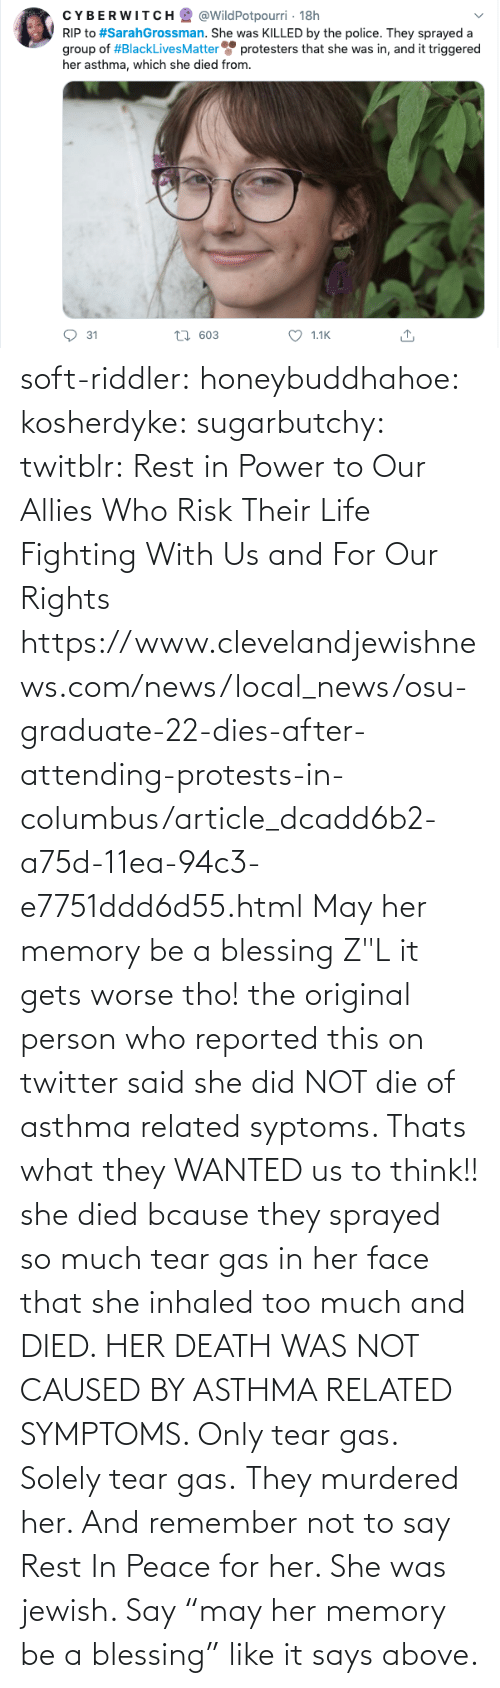 "die: soft-riddler:  honeybuddhahoe:  kosherdyke:  sugarbutchy:  twitblr: Rest in Power to Our Allies Who Risk Their Life Fighting With Us and For Our Rights https://www.clevelandjewishnews.com/news/local_news/osu-graduate-22-dies-after-attending-protests-in-columbus/article_dcadd6b2-a75d-11ea-94c3-e7751ddd6d55.html    May her memory be a blessing Z""L  it gets worse tho! the original person who reported this on twitter said she did NOT die of asthma related syptoms. Thats what they WANTED us to think!! she died bcause they sprayed so much tear gas in her face that she inhaled too much and DIED. HER DEATH WAS NOT CAUSED BY ASTHMA RELATED SYMPTOMS. Only tear gas. Solely tear gas. They murdered her.     And remember not to say Rest In Peace for her. She was jewish. Say ""may her memory be a blessing"" like it says above."